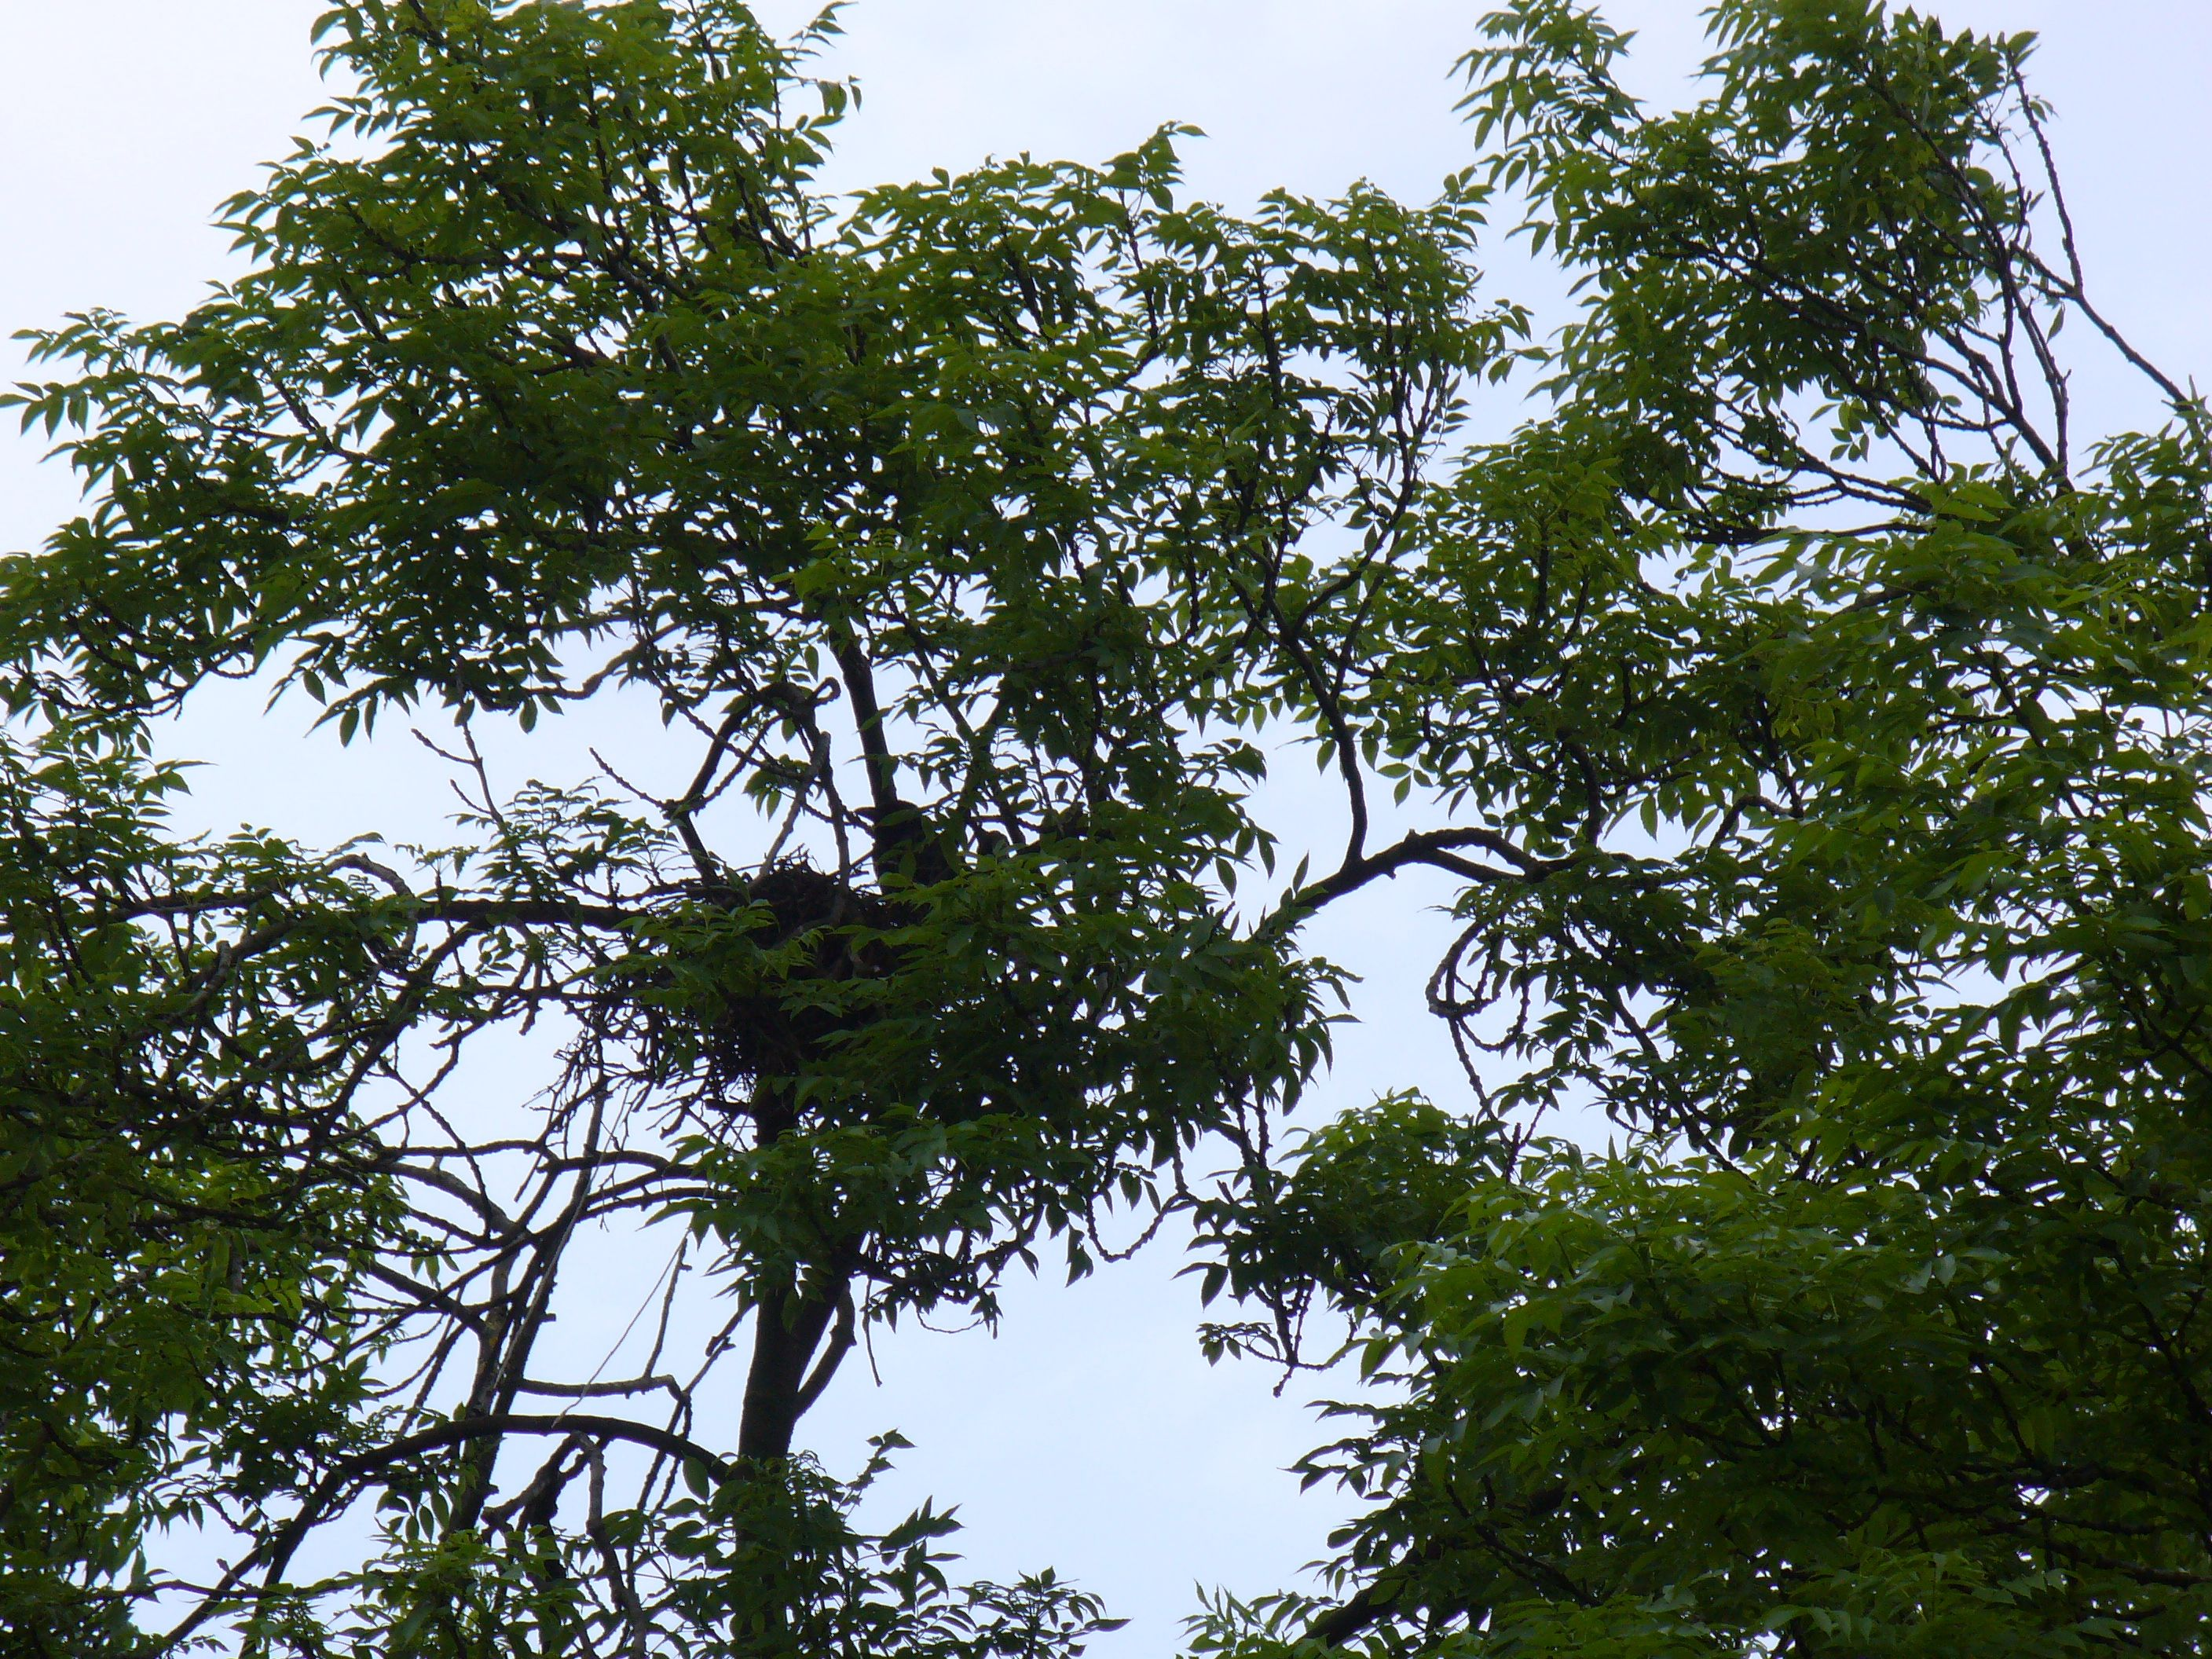 crows nest in ash with crow, closeup with leaves, spring 2014